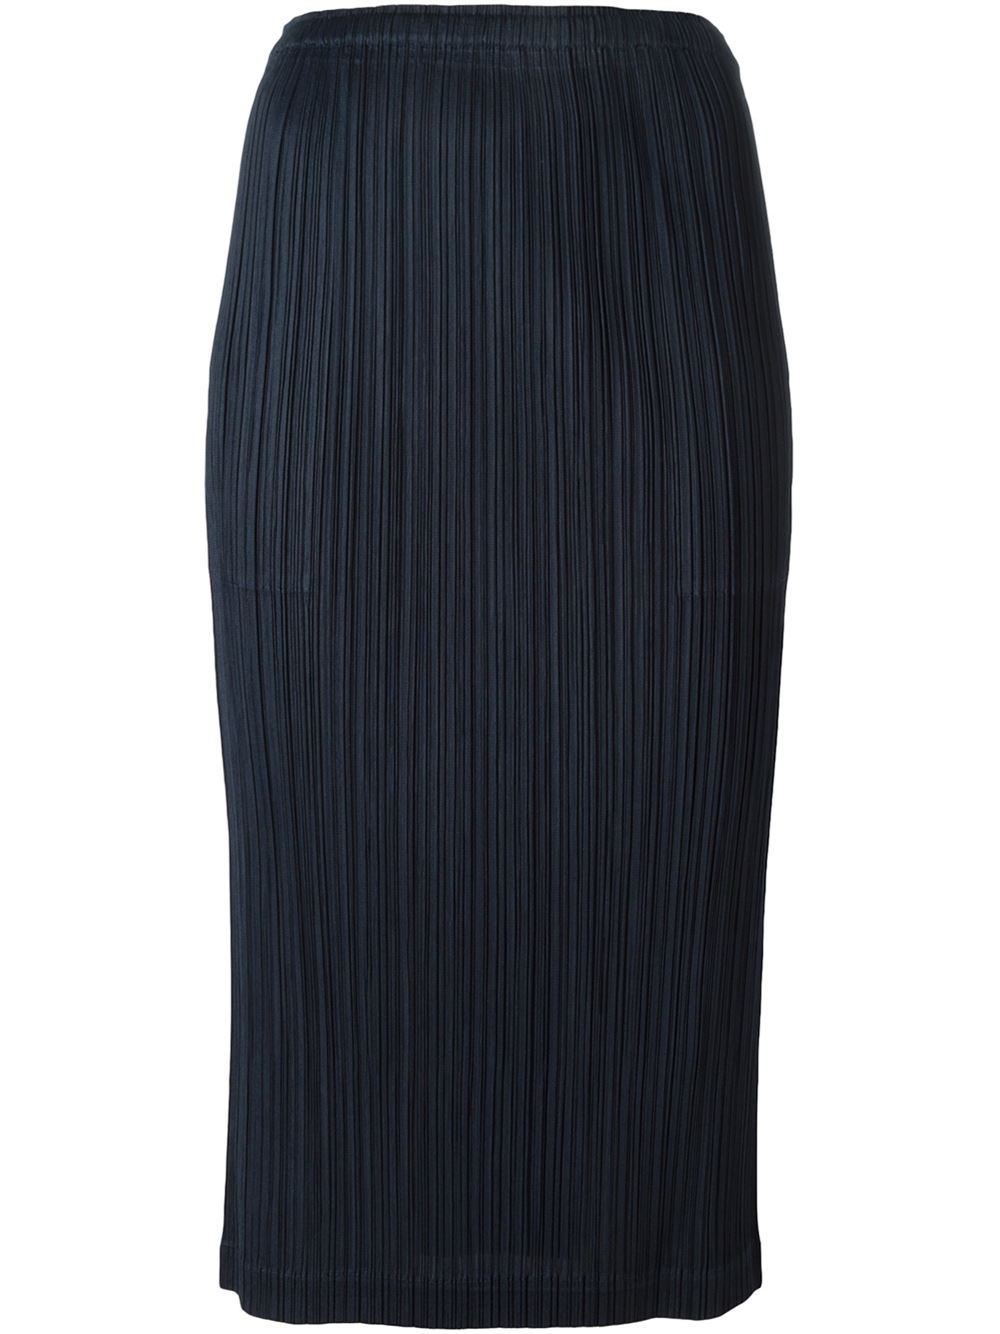 pleats issey miyake pleated pencil skirt in blue lyst